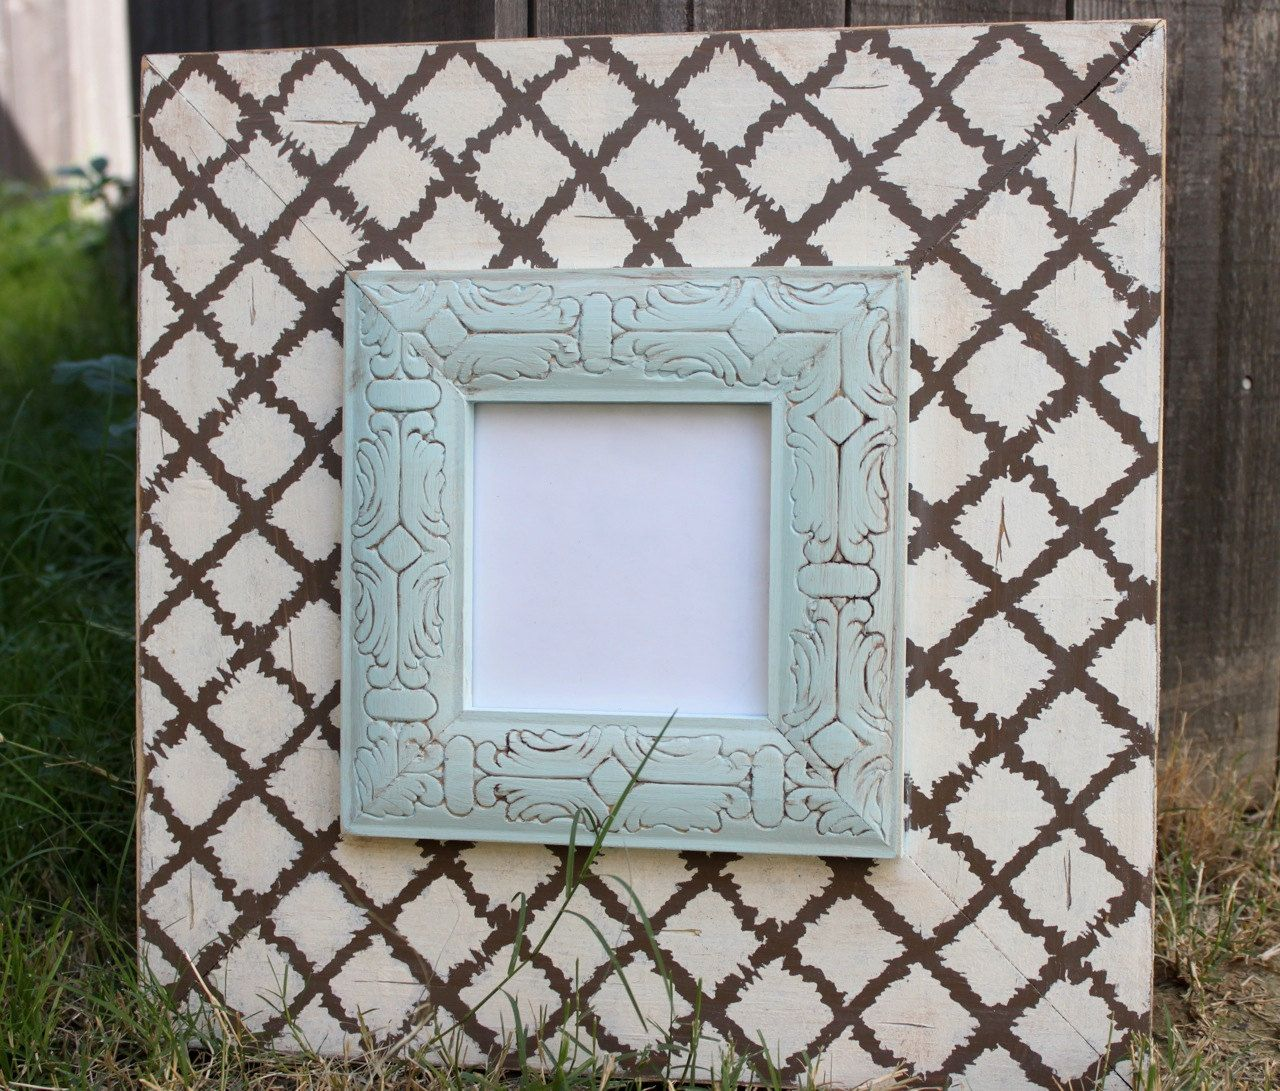 5x5 Wood Distressed Handmade Picture Frame by deltagirlframes | Home ...